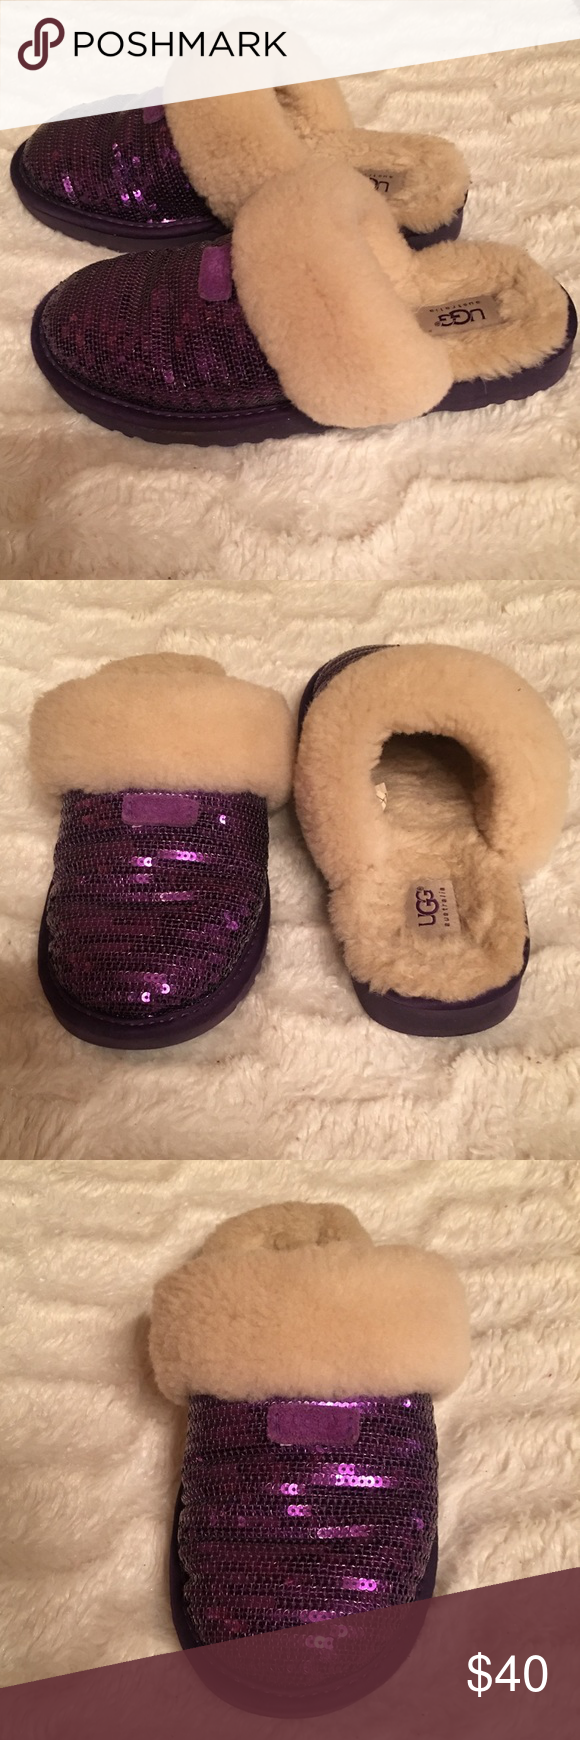 6fe58b48f3f Ugg Dazzle Sequin Slippers! Comfortable! Warm! Your feet will be ...